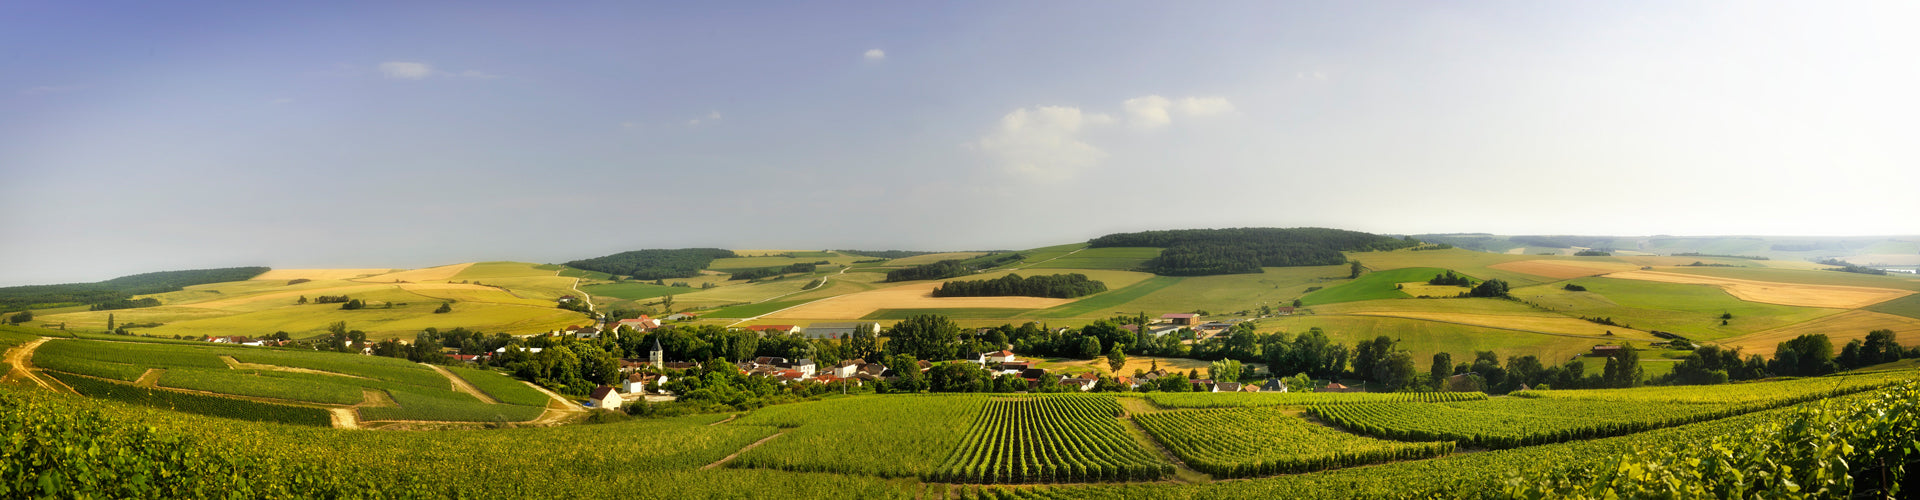 Champagne Drappier Vineyards in Urville, France